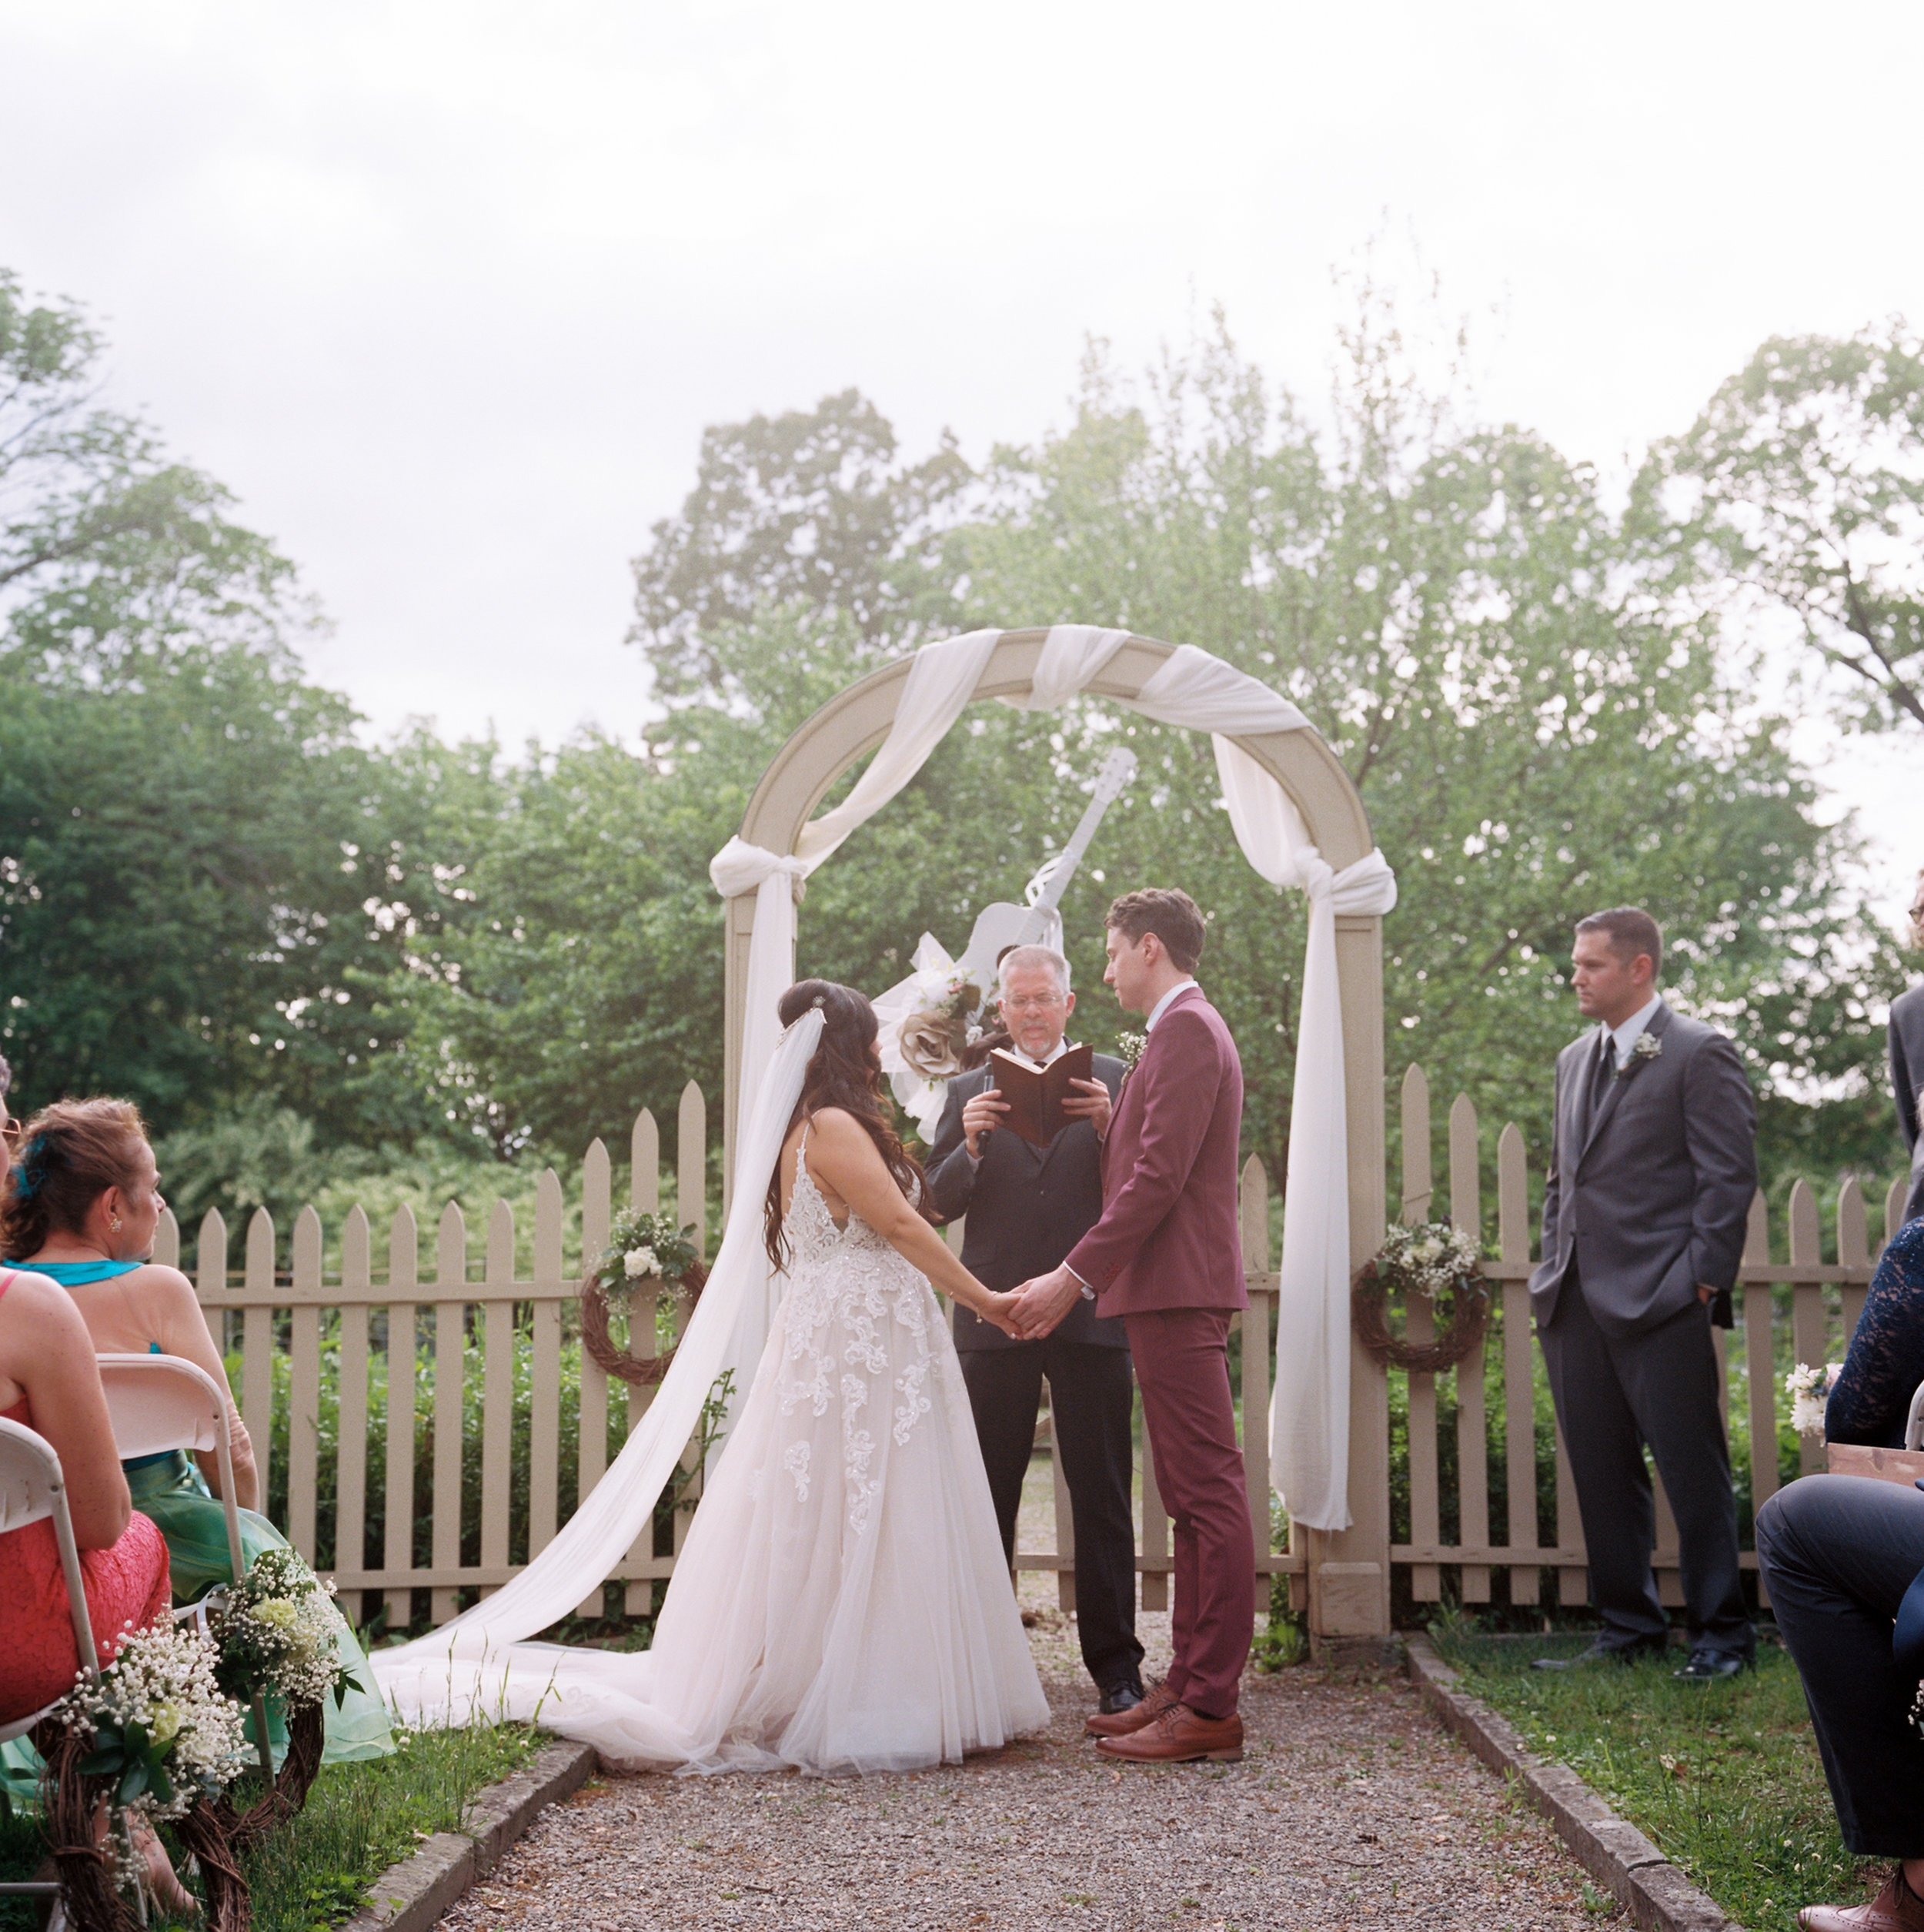 Mariangel+Kieran-Oakeside Mansion Wedding-Bloomfield New Jersey-Film Photography- Olivia Christina Photo-1 (21).JPG